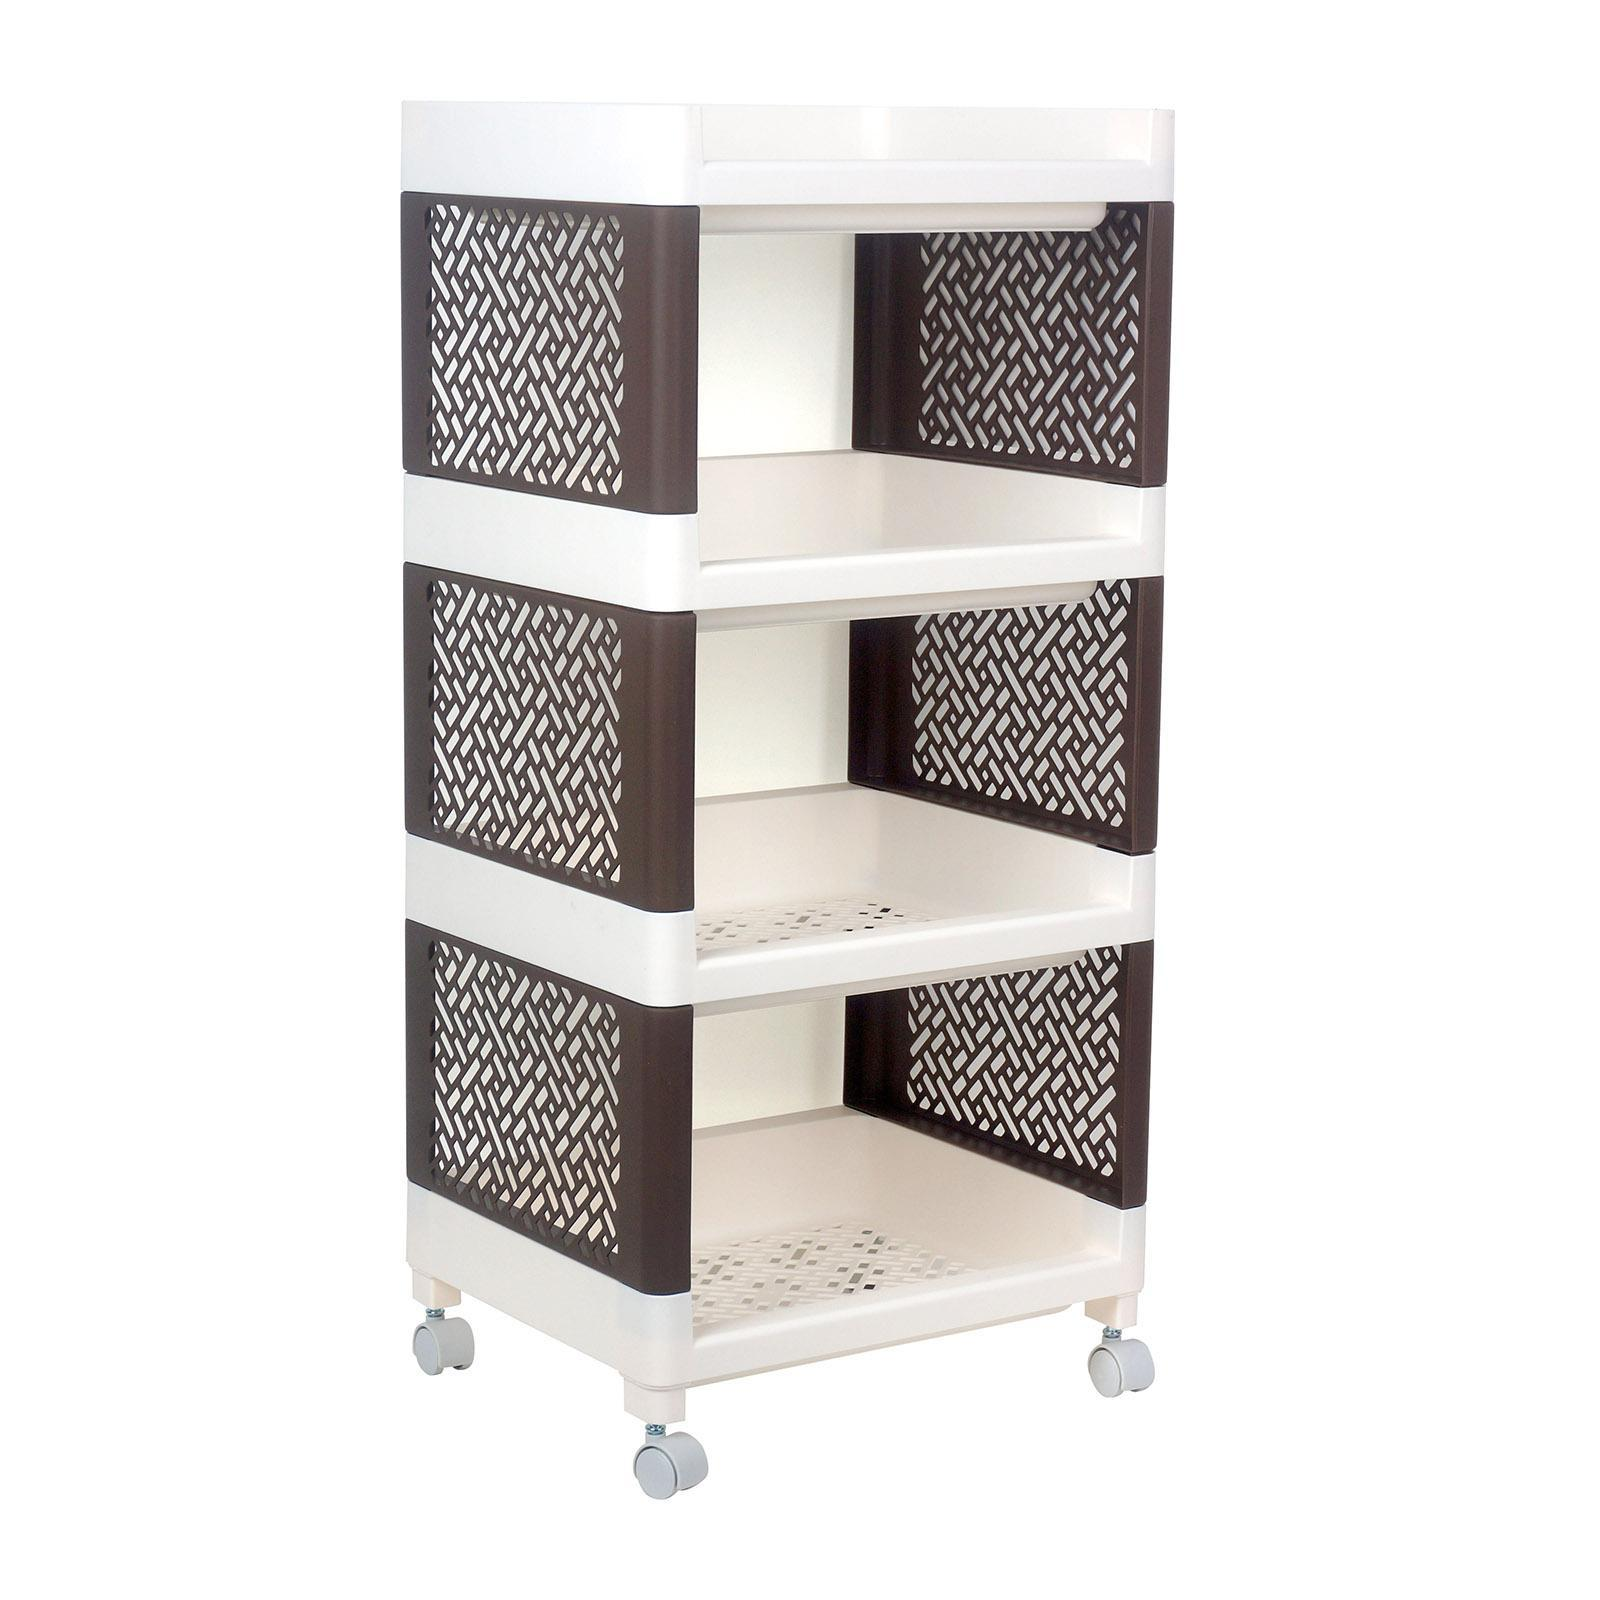 CITYLIFE 4 Tier KD Rack